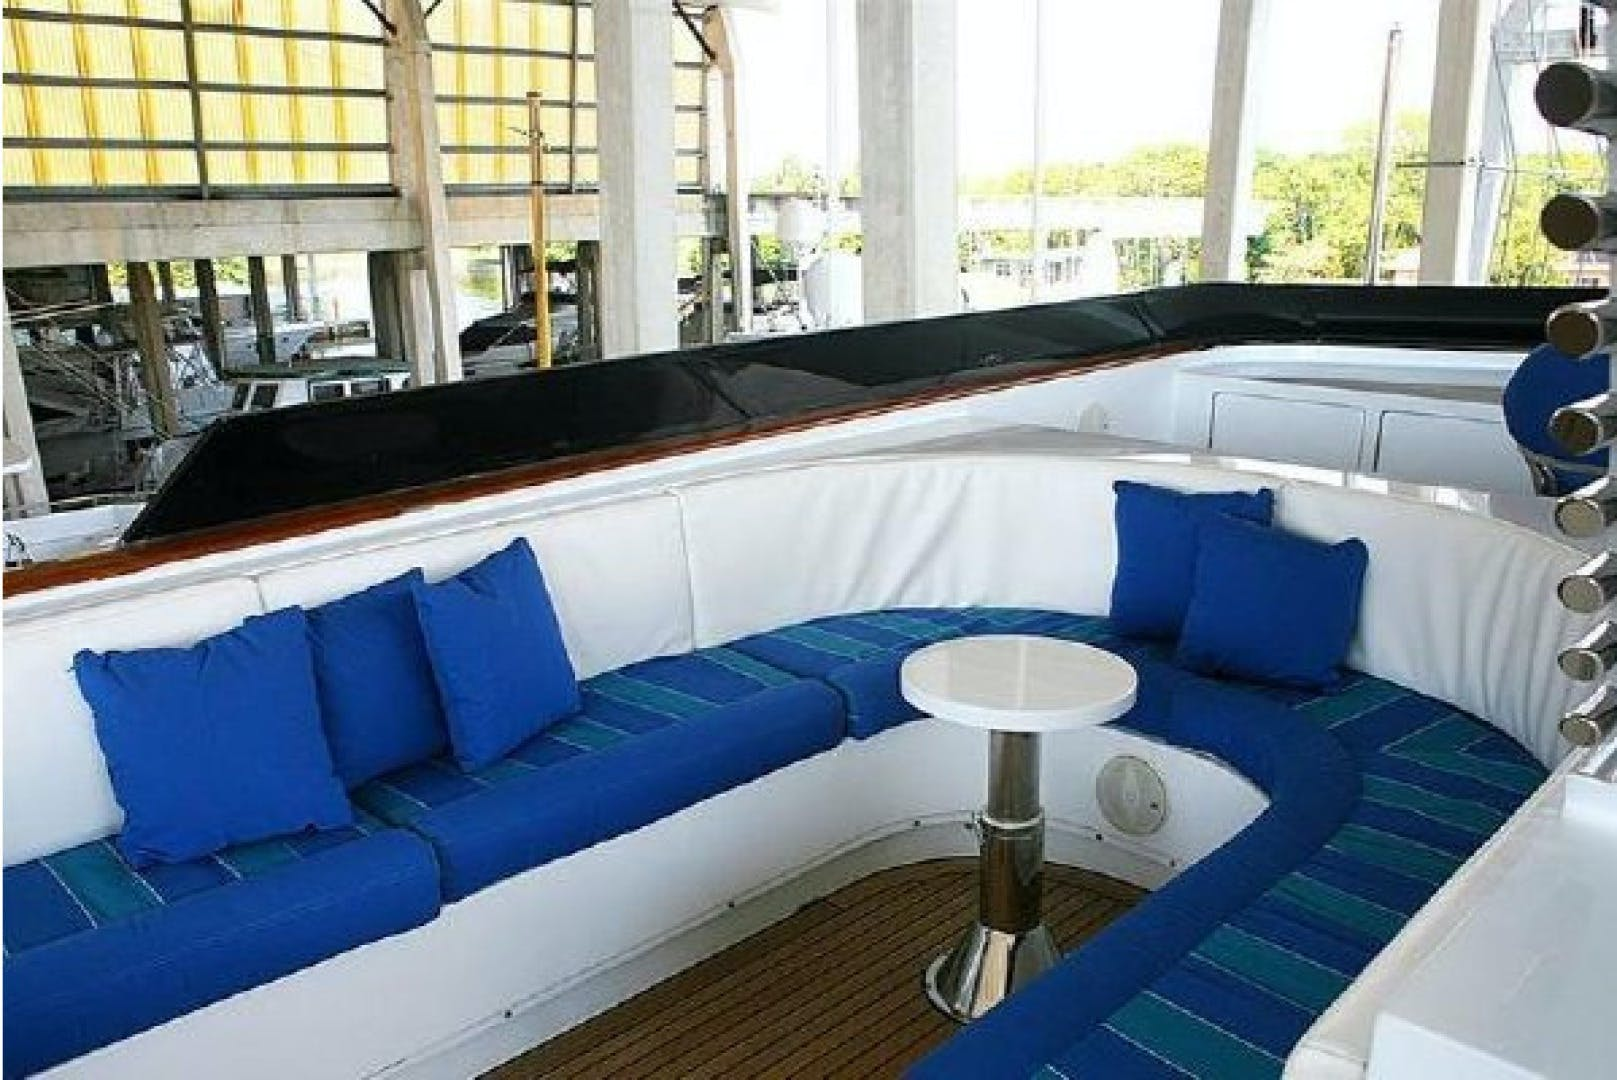 1991 Other 120' Motor Yacht 120 by Lloyds Chief | Picture 2 of 35